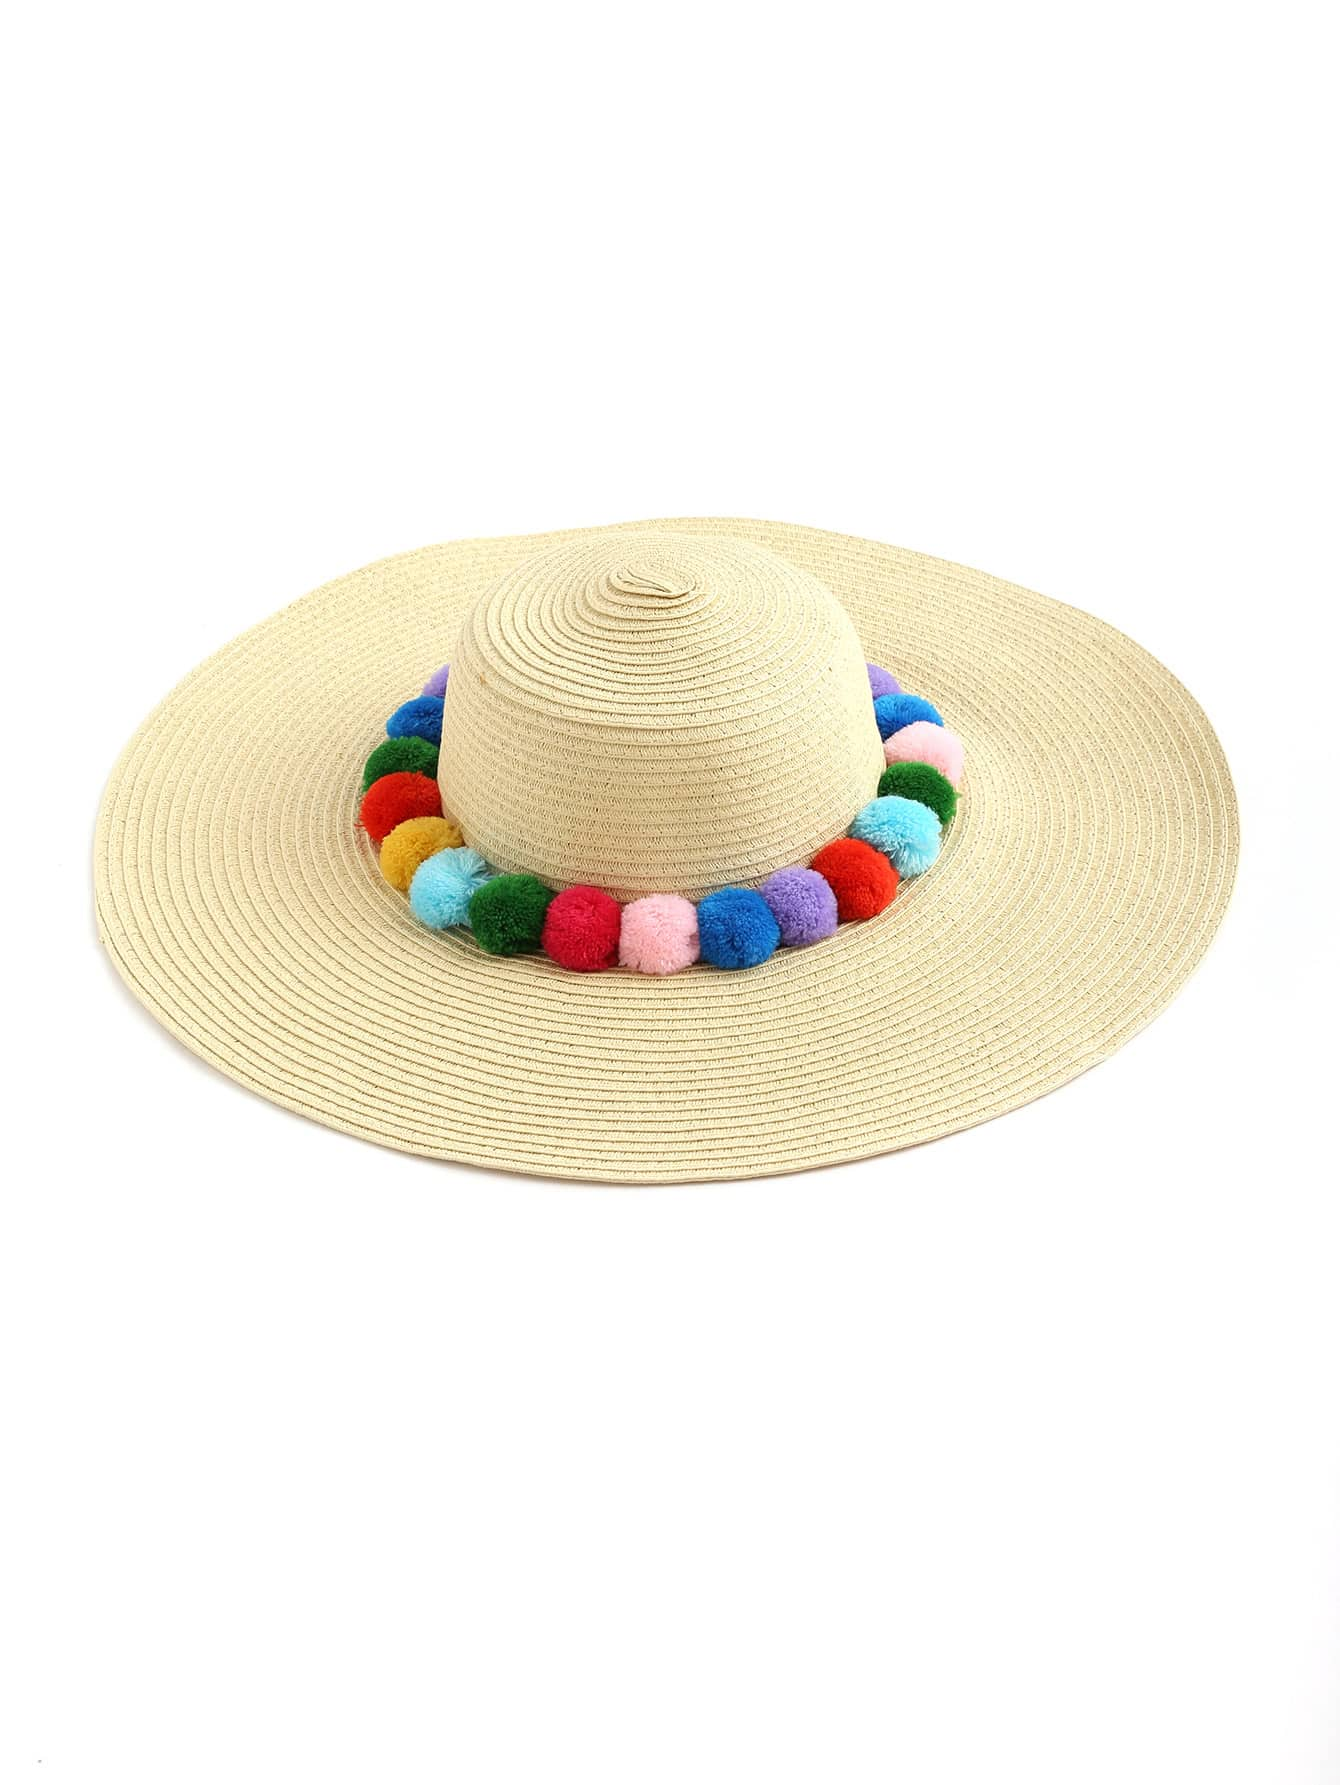 Pom Pom Embellished Floppy Hat